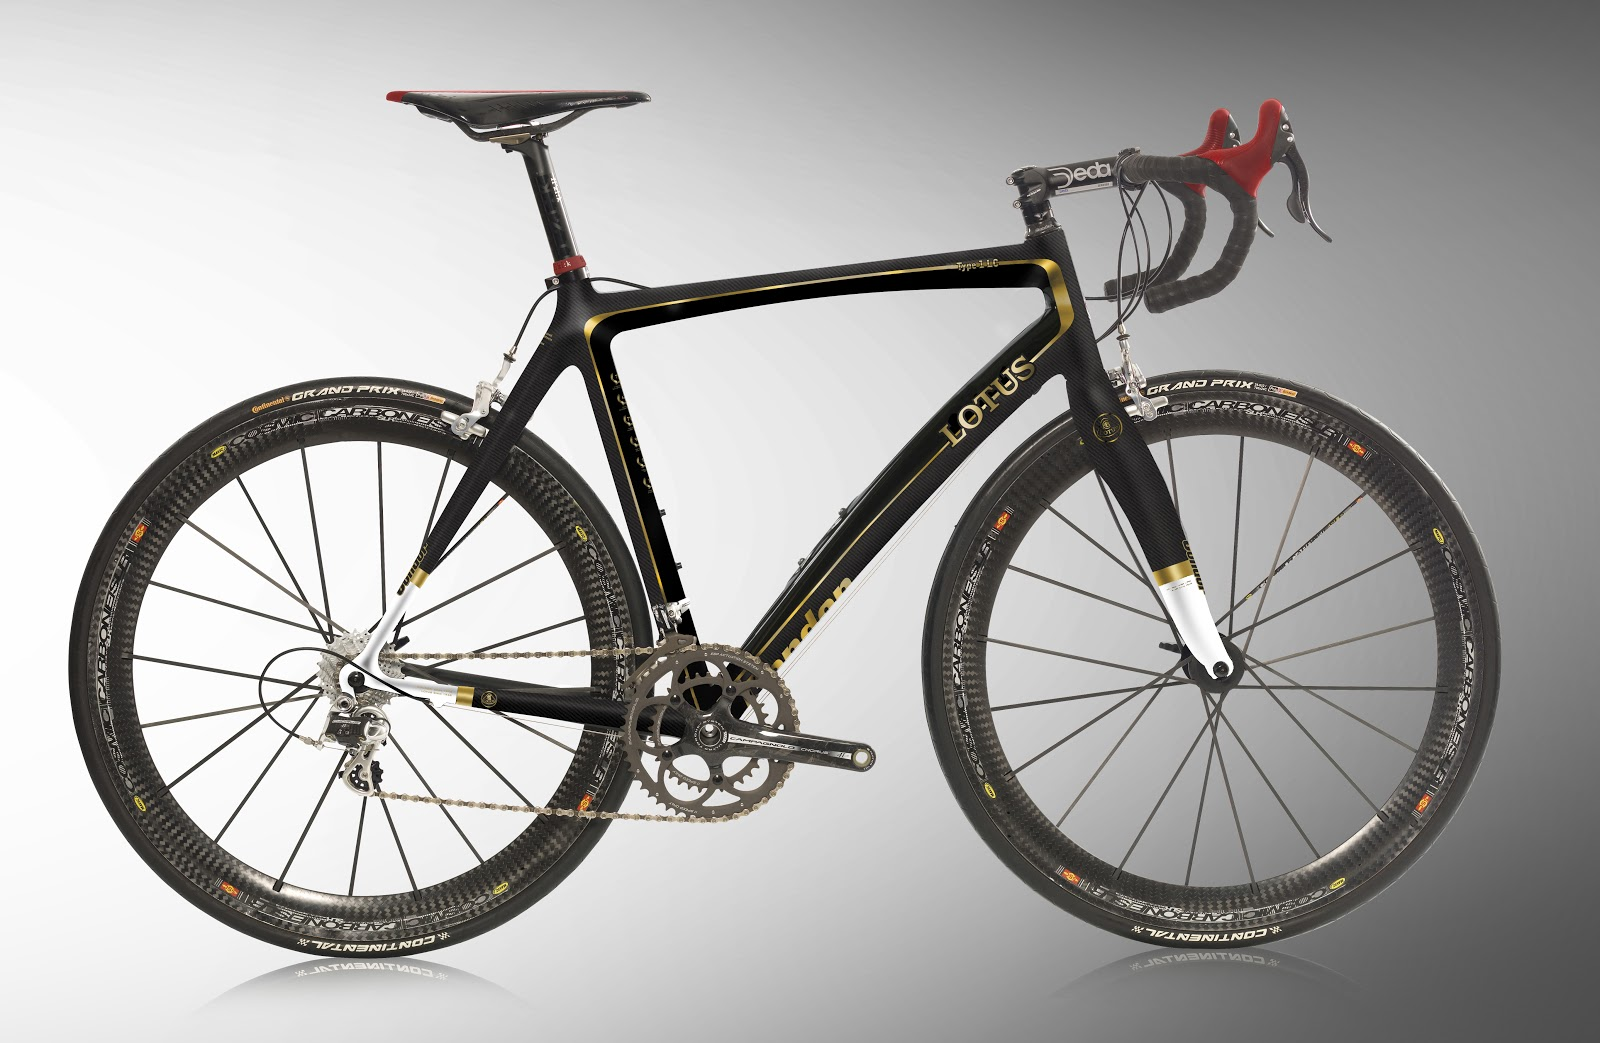 Race Pace Net Condor Type 1lc Racing Edition Bike